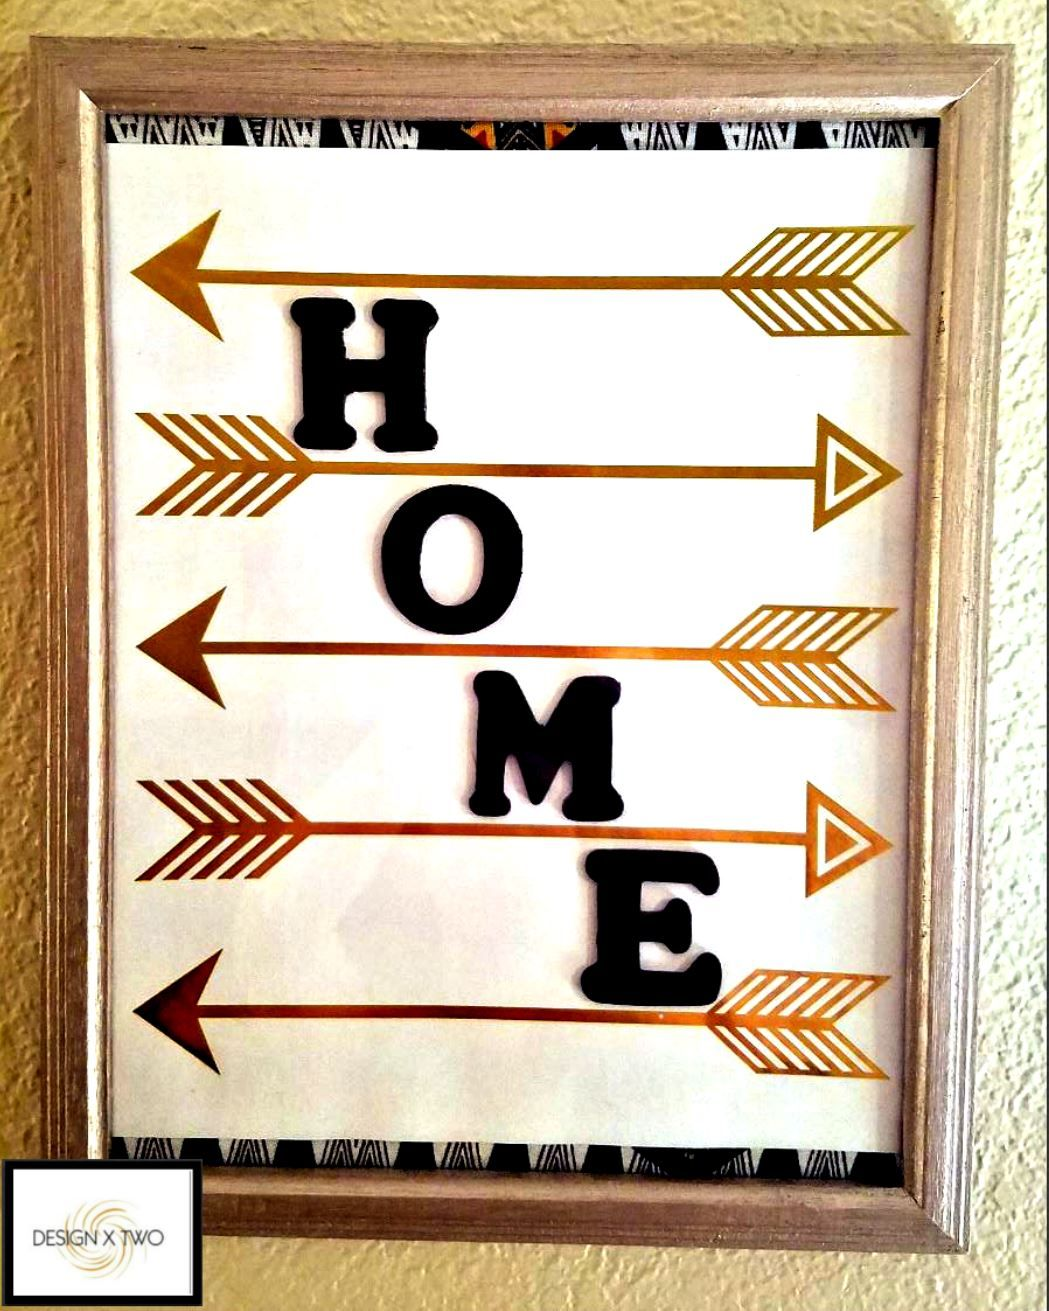 How to glue scrapbook paper to wood letters - Diy Art Scrapbook Paper With Gold Arrows Wooden Letters Painted Black Glued Between Arrows